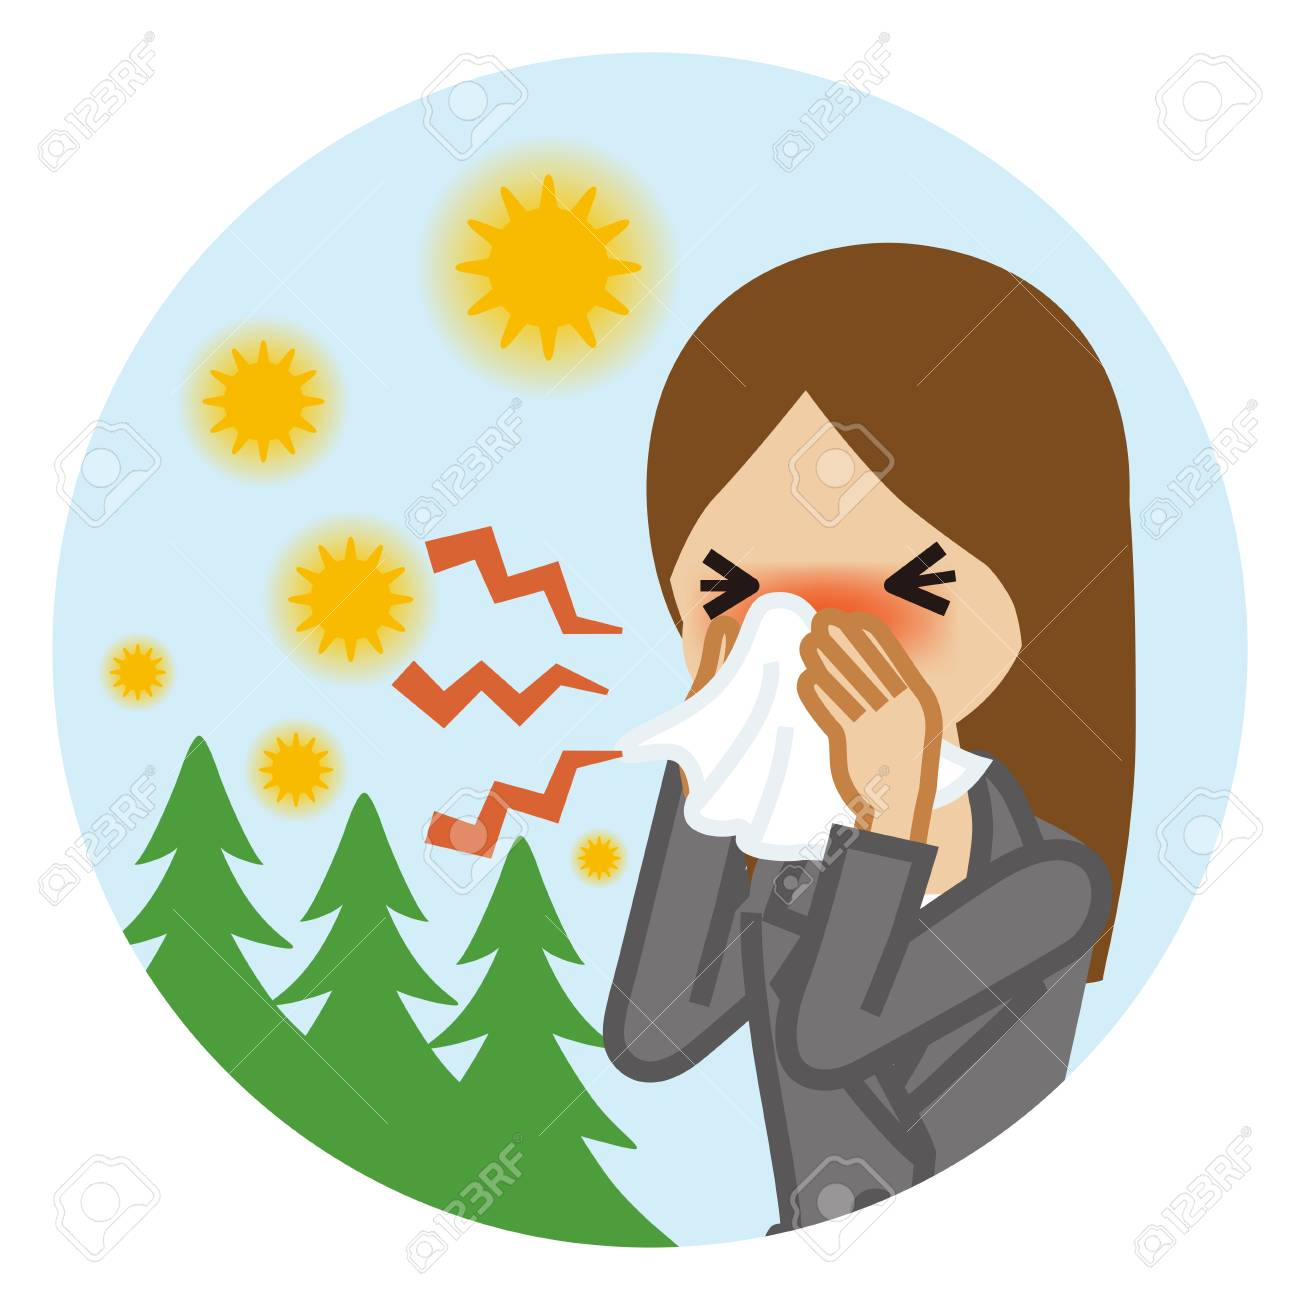 Businesswoman blowing nose with a tissue - Hay fever concept art - 124996673